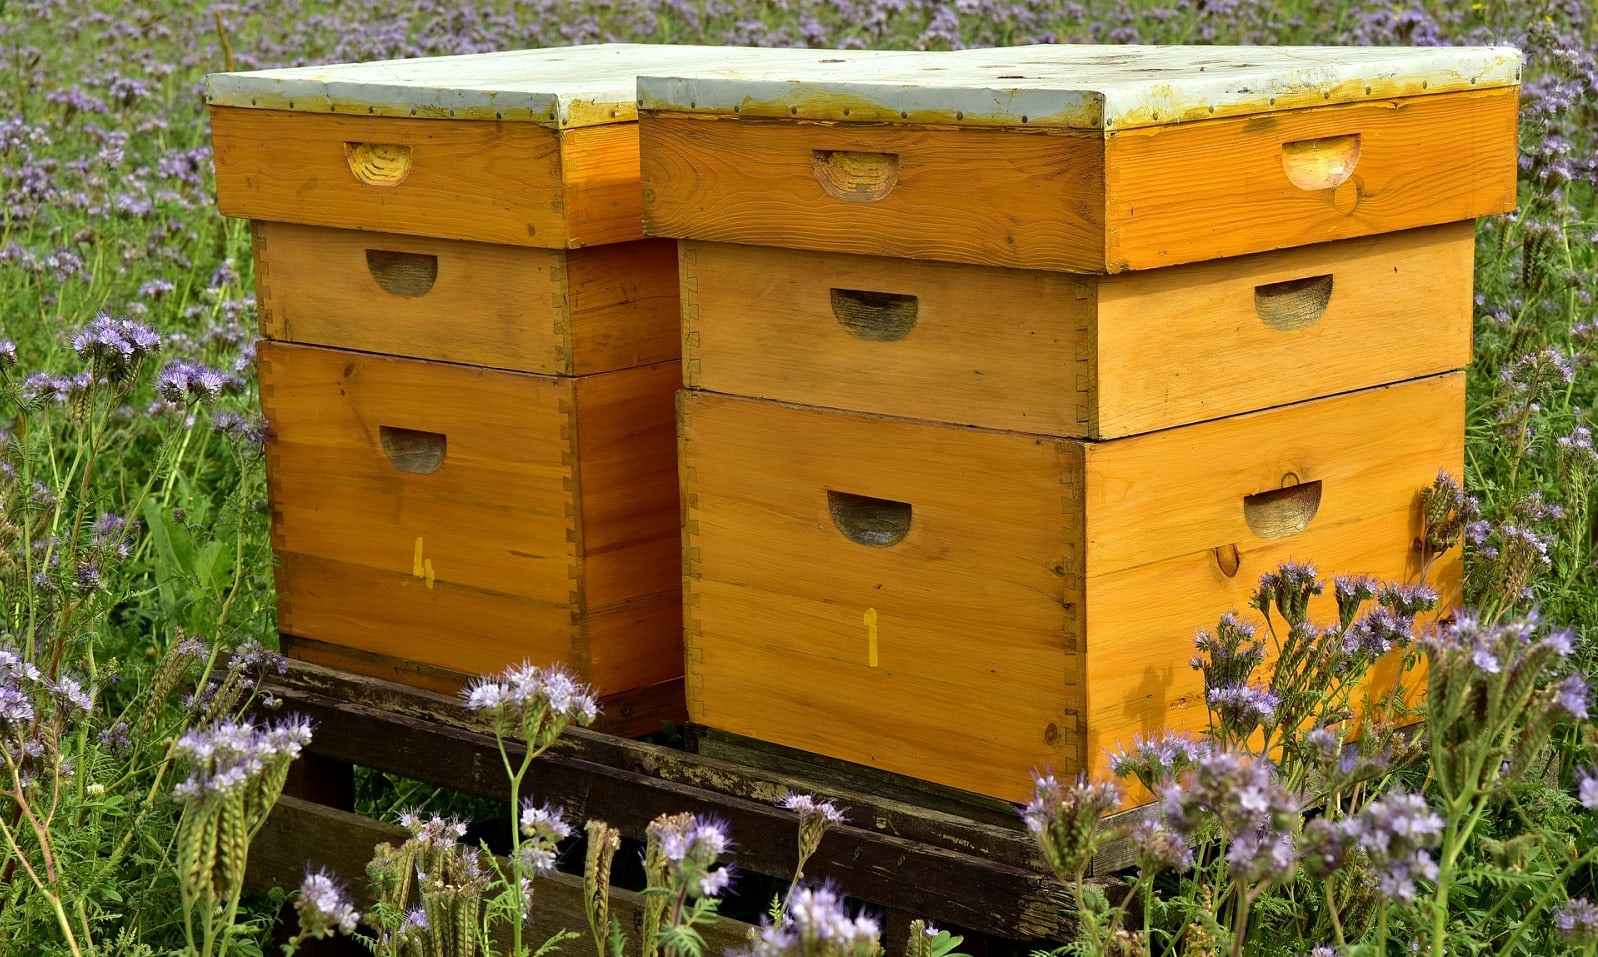 Save the bees – it's time to take action